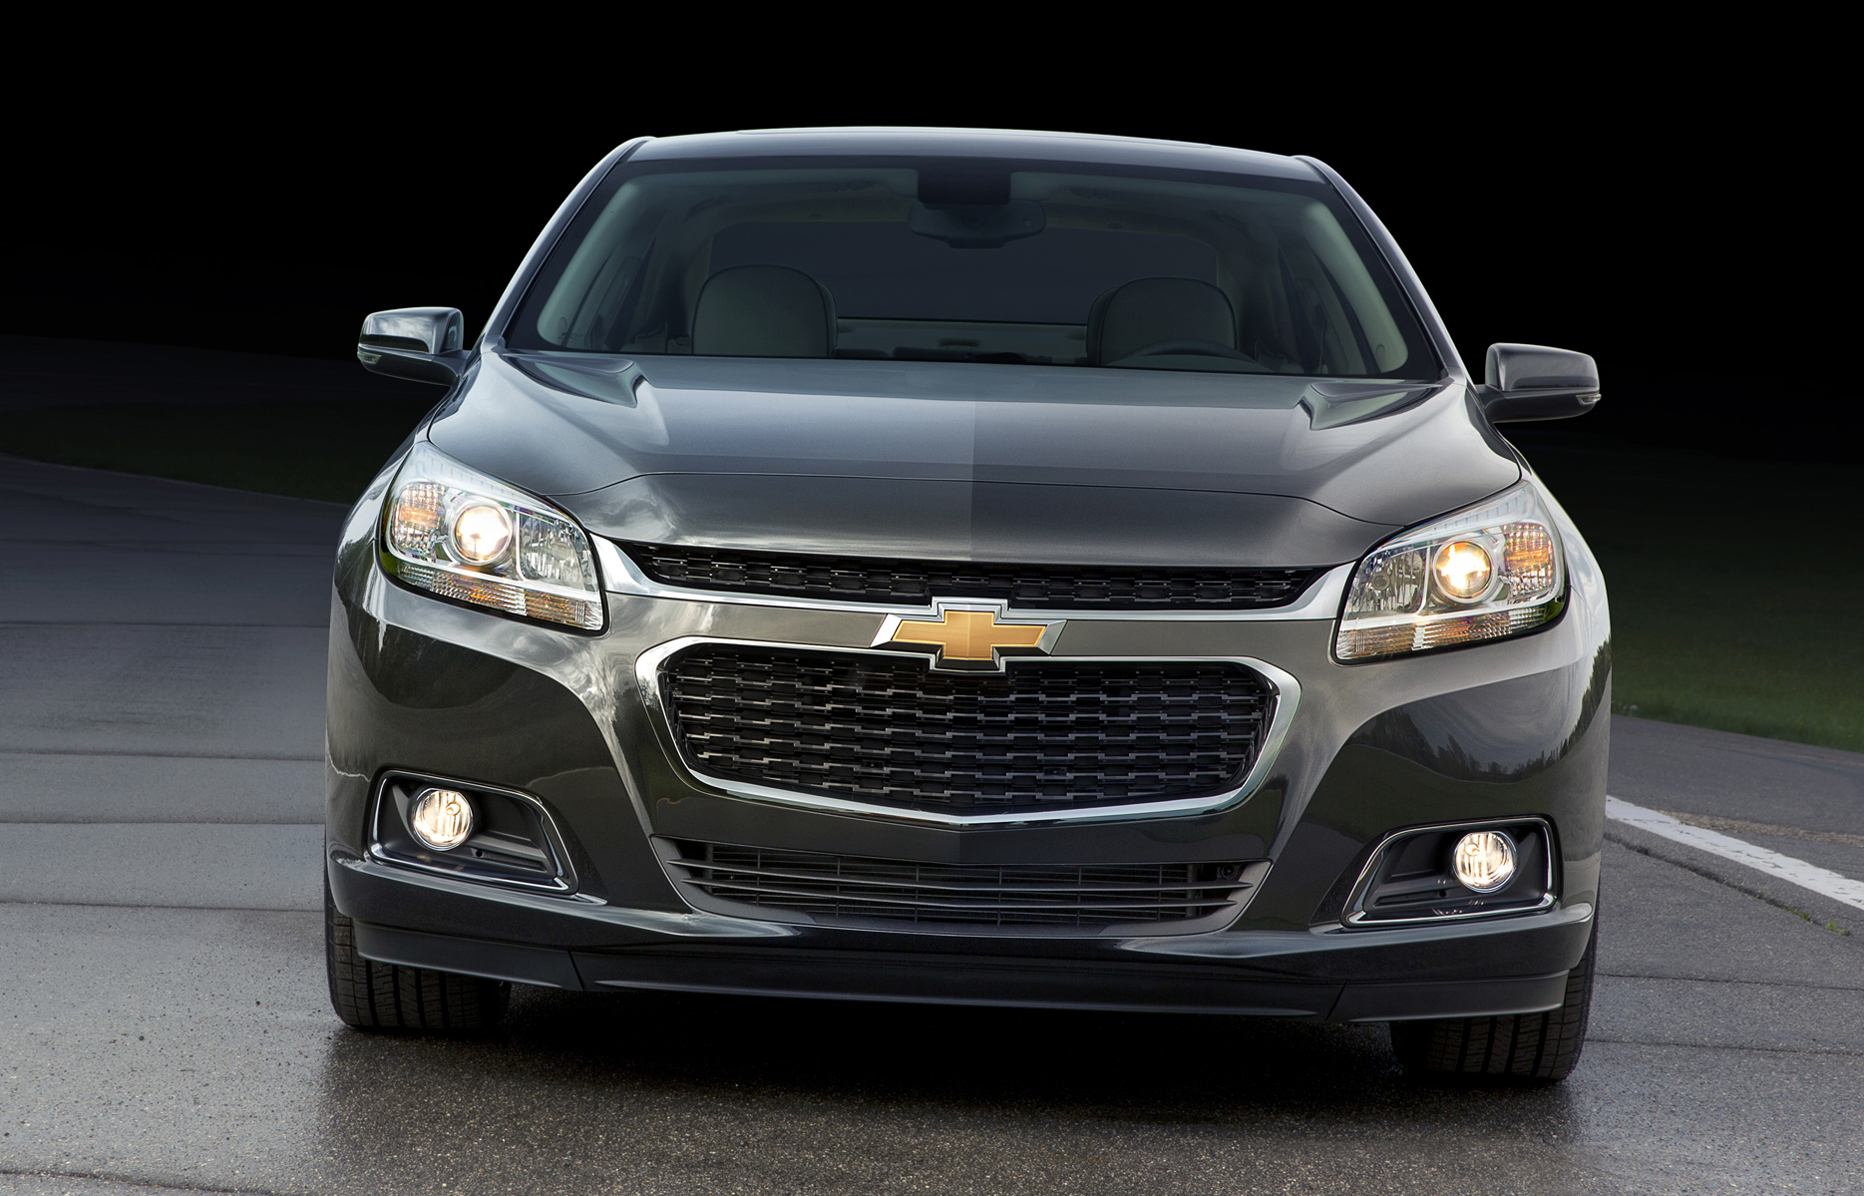 The 2014 Malibu's front fascia features a new, more prominent lower grille and the hood extends down and over the leading edge of a narrower upper grille. The grille openings are wider and accented with chrome.